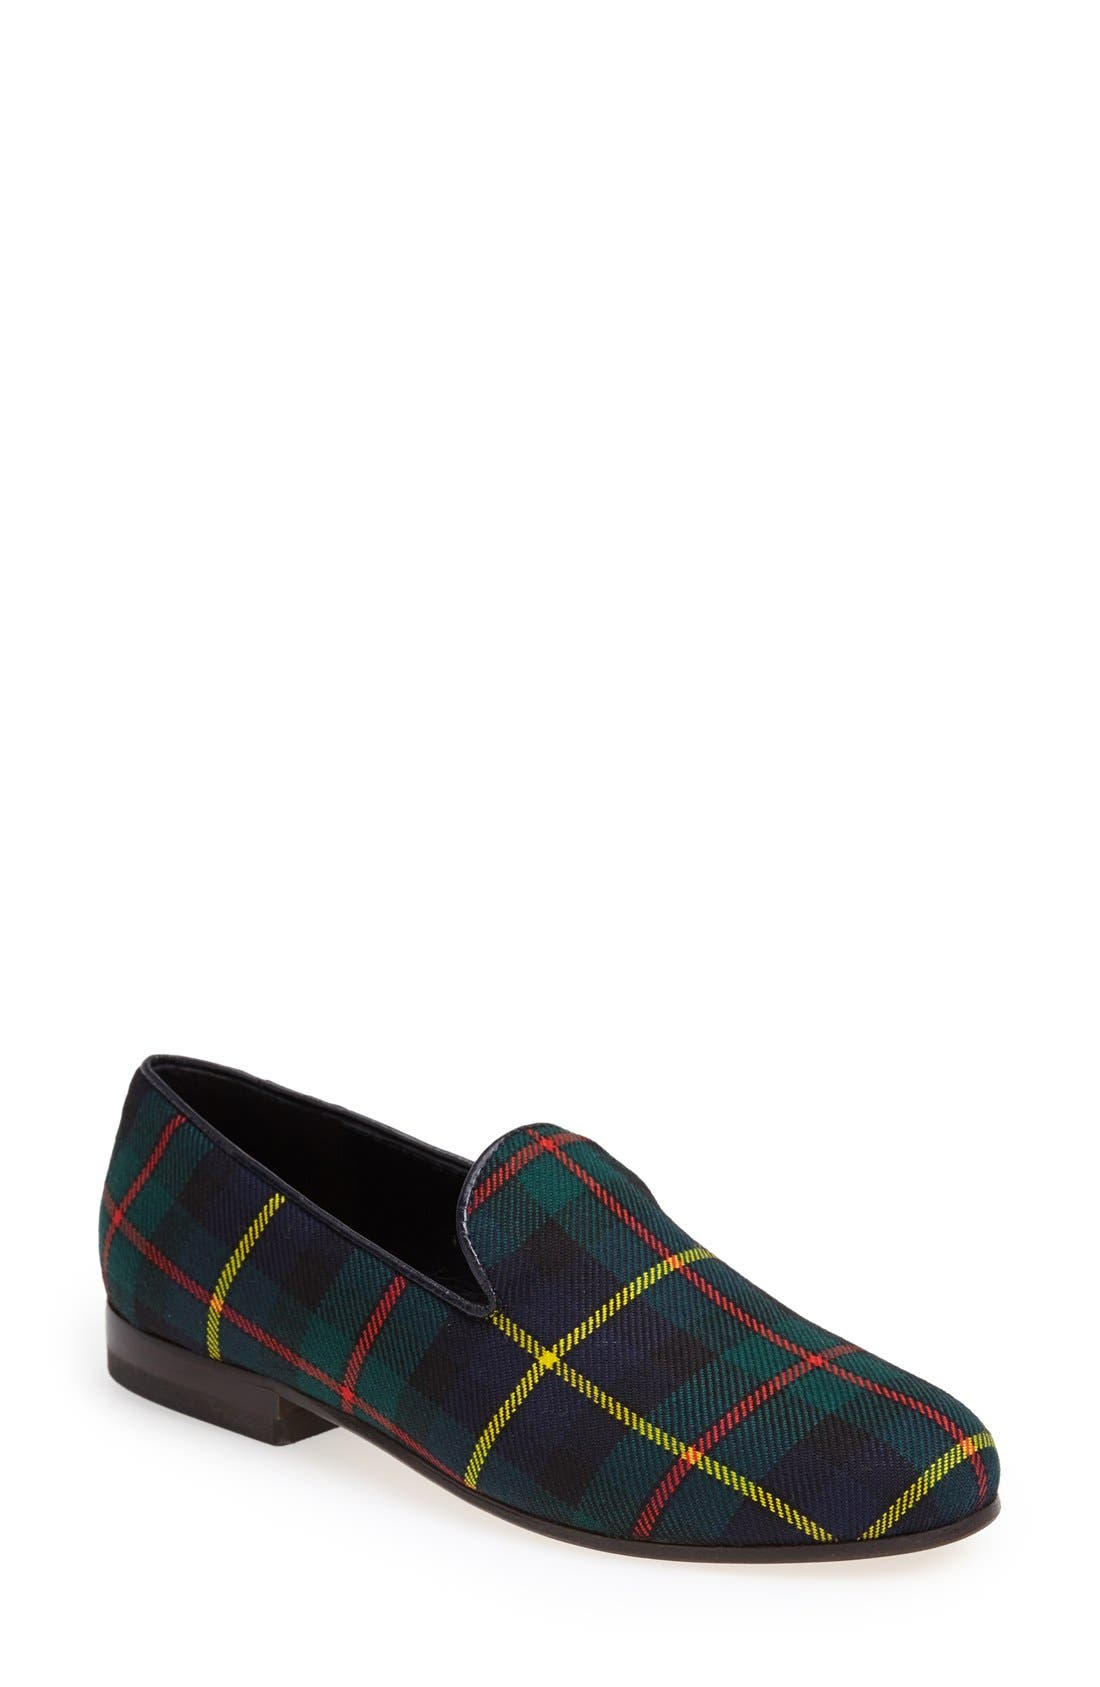 Alternate Image 1 Selected - CB Made in Italy Plaid Smoking Loafer (Women)